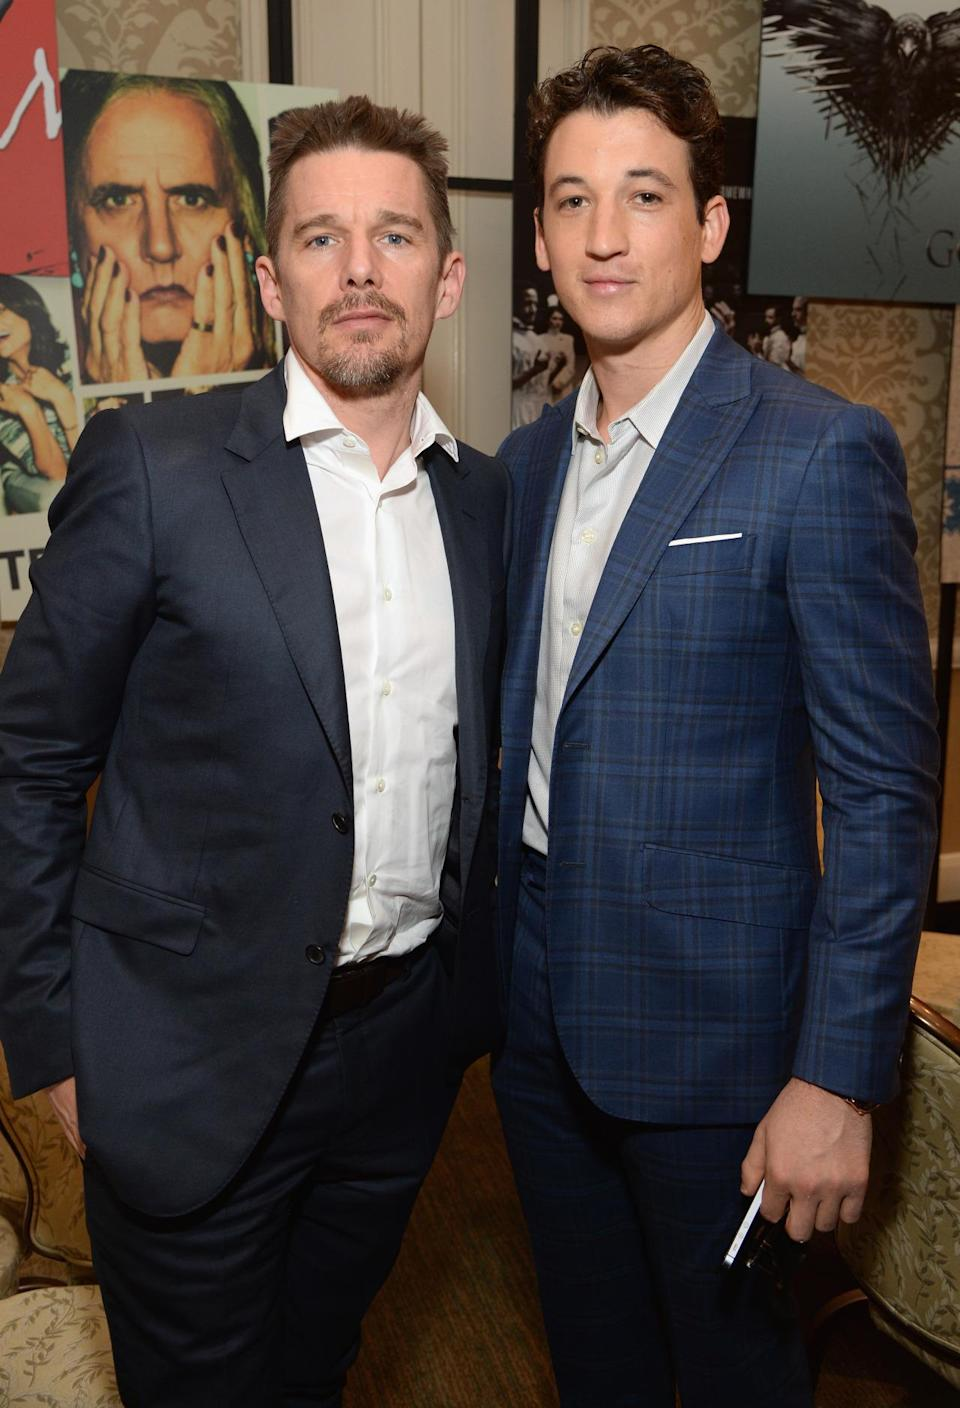 Ethan Hawke and Miles Teller look dapper in shades of blue suits.